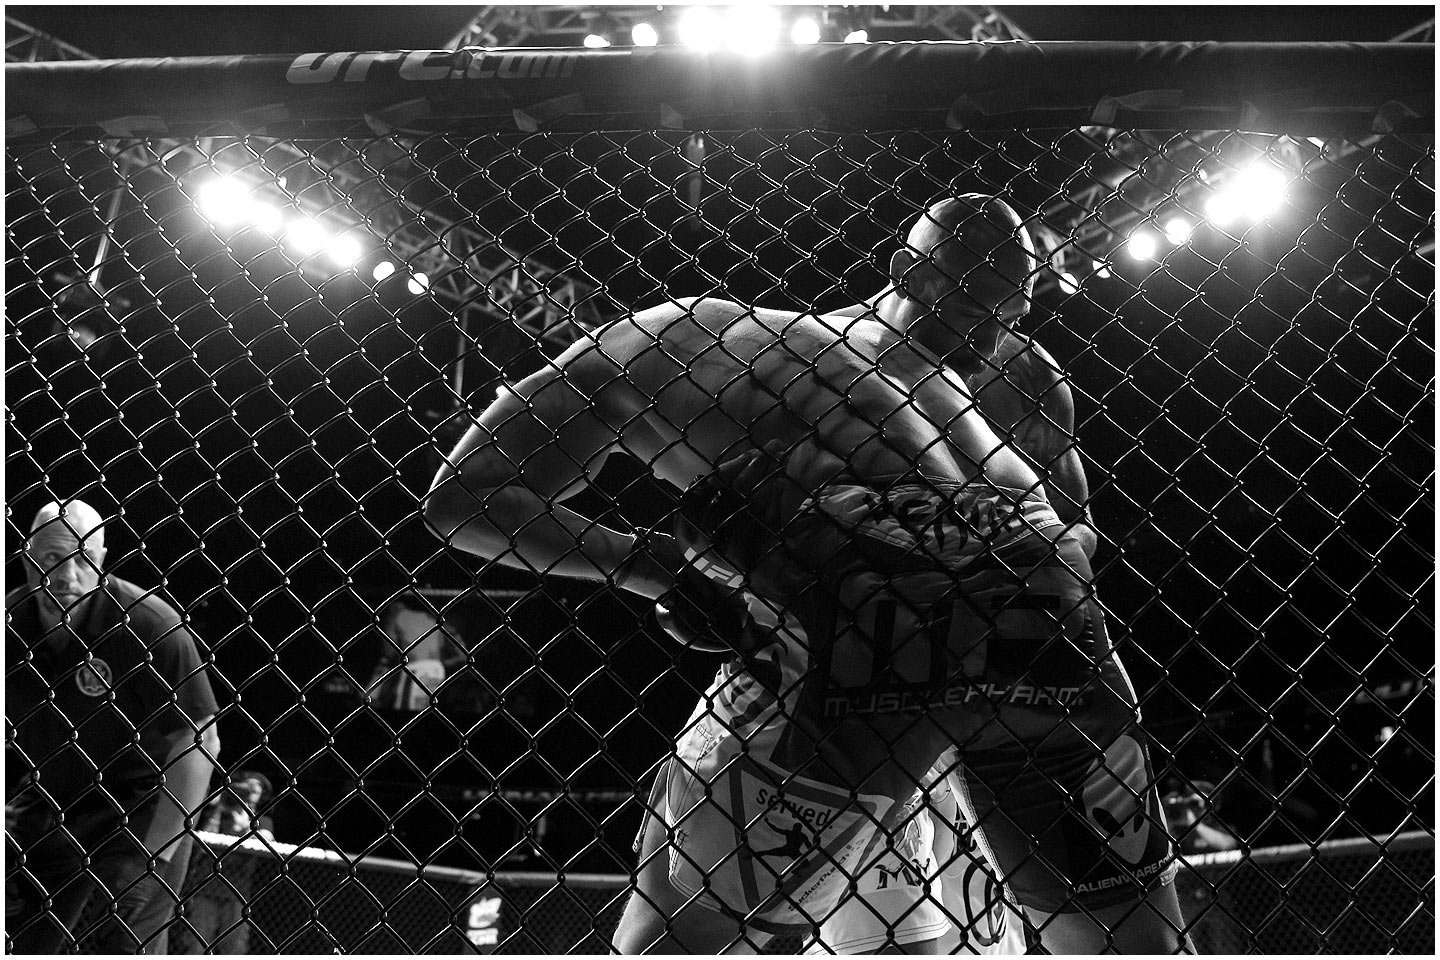 Conor Mcgregor Wallpaper Black And White: UFC On Fox 3: Miller